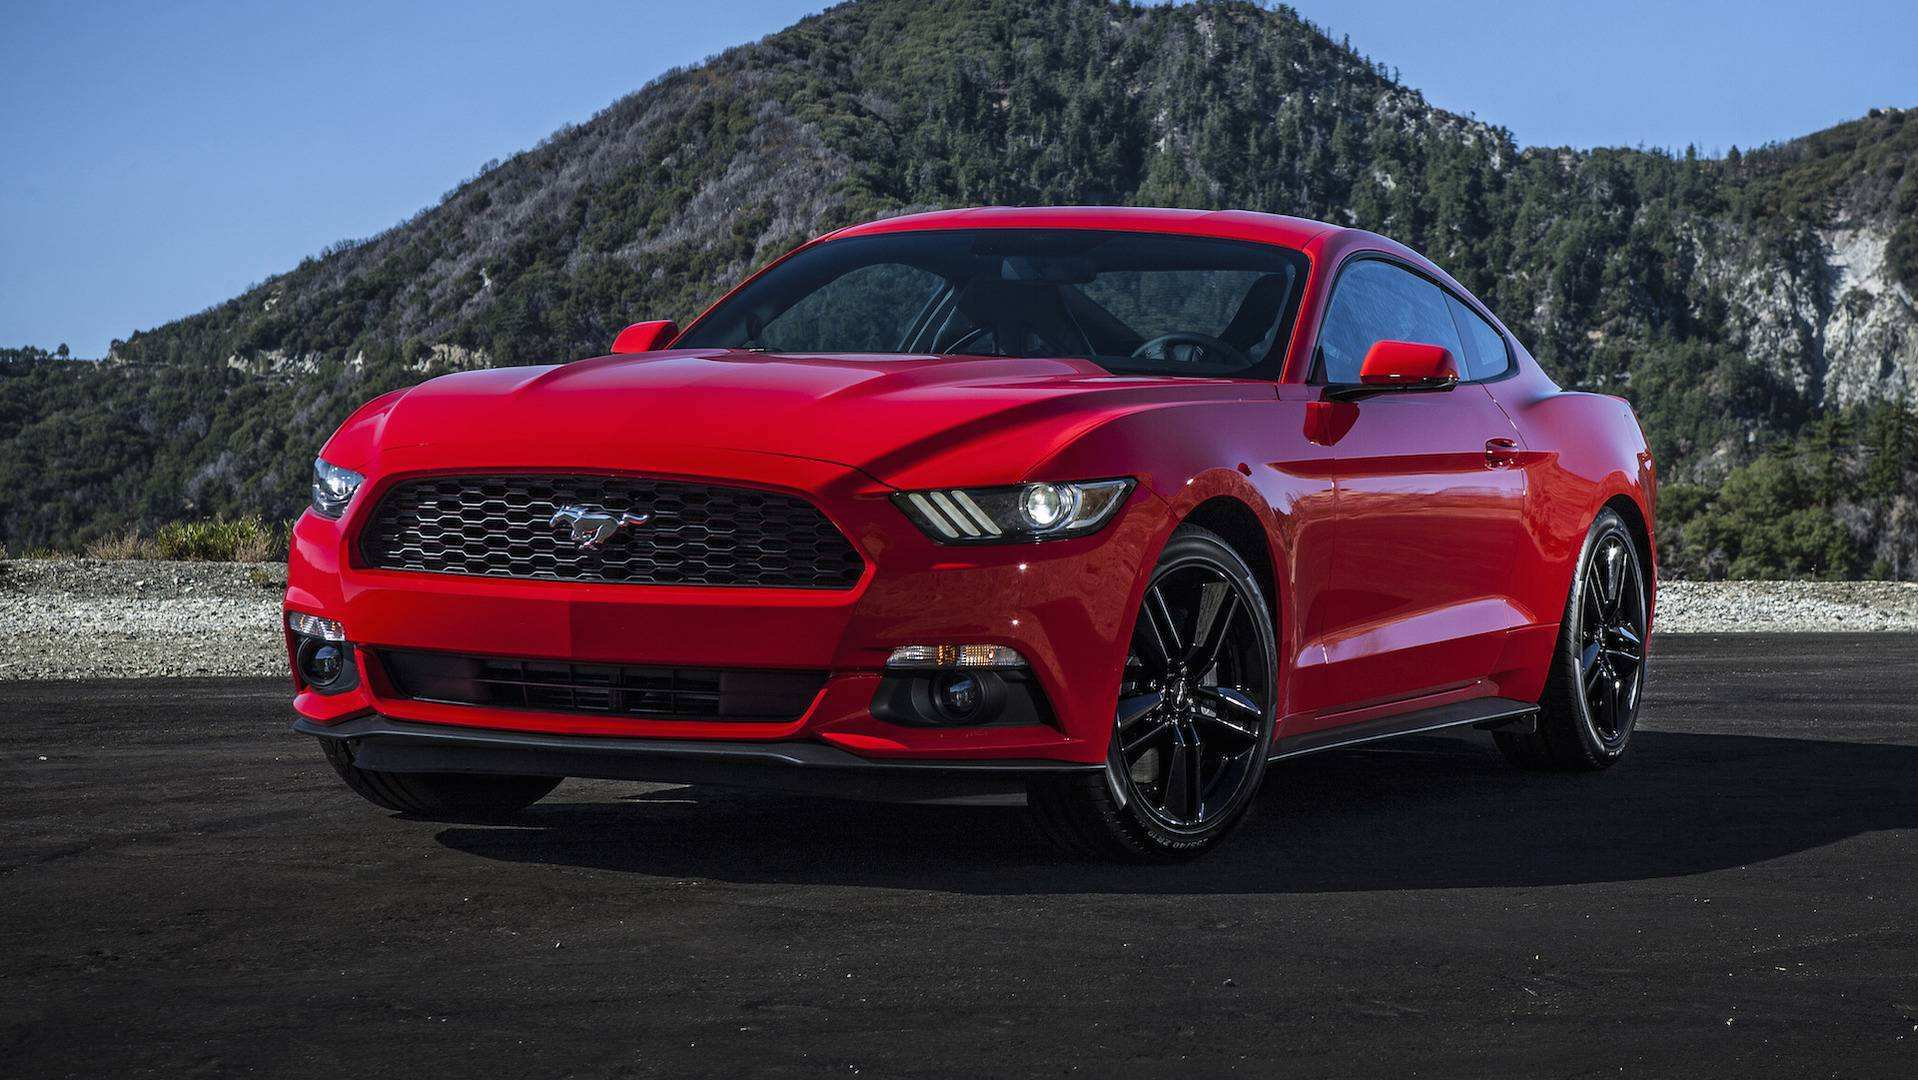 56 Best 2020 Mustang Release Date And Concept